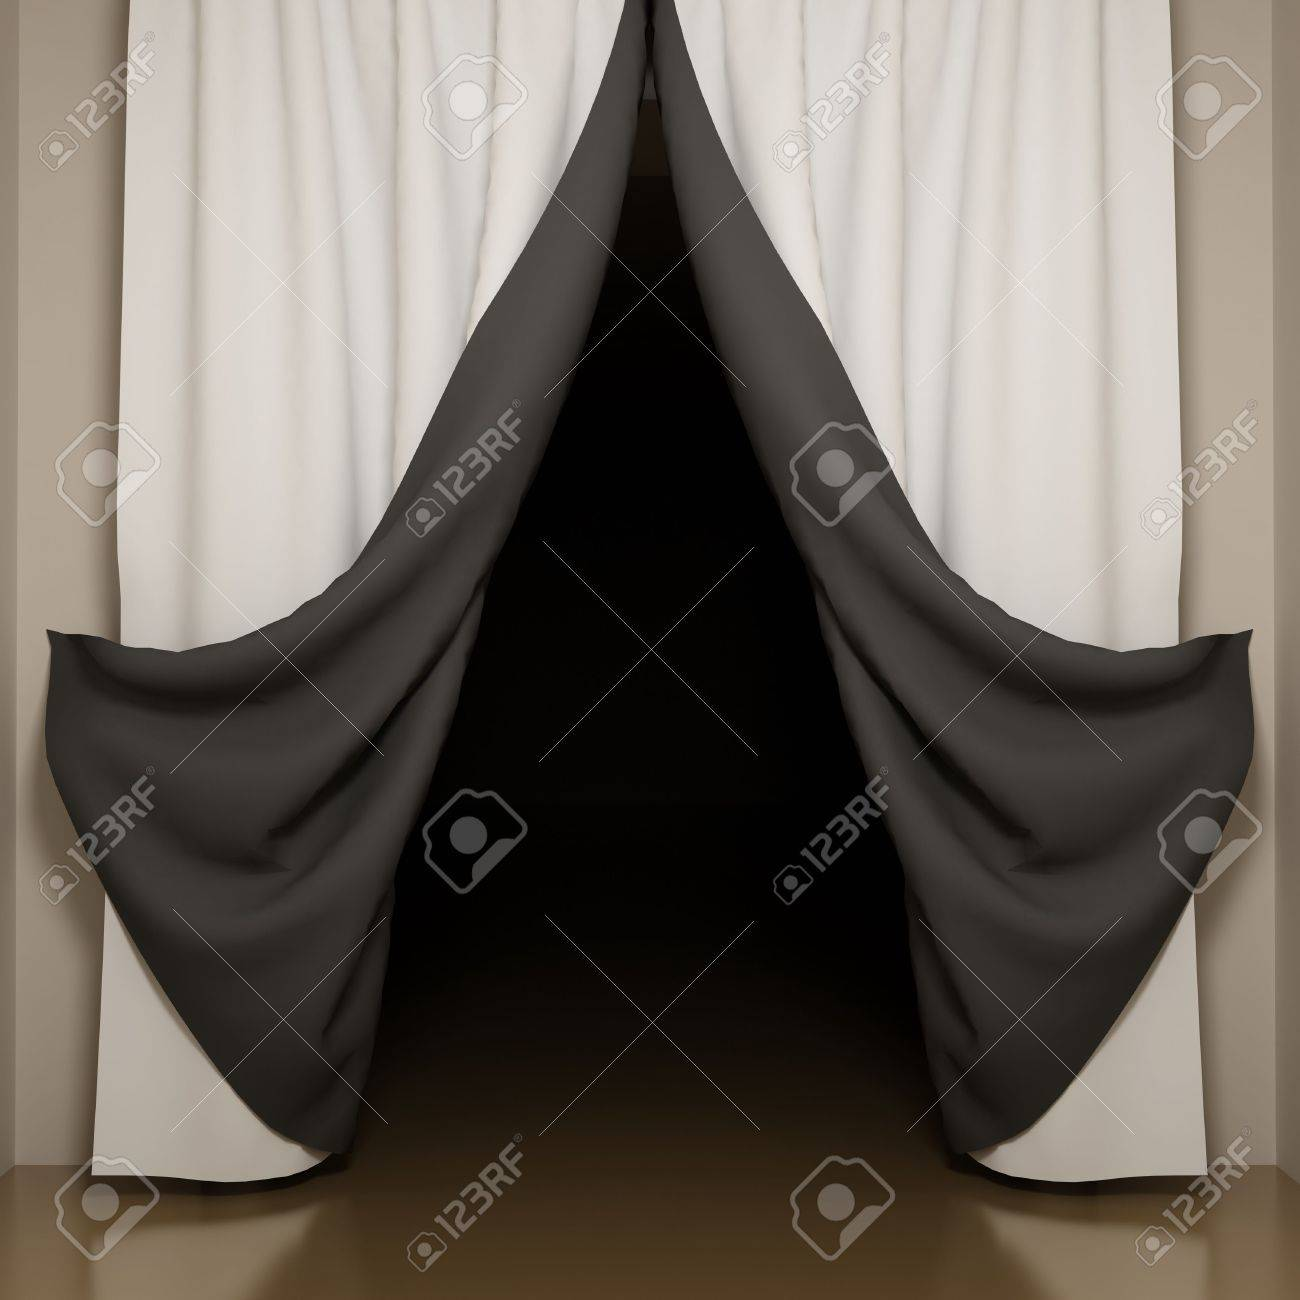 Open black curtain - Open Black Curtain Black And White Curtains With Open Angle View To Dark Room Stock